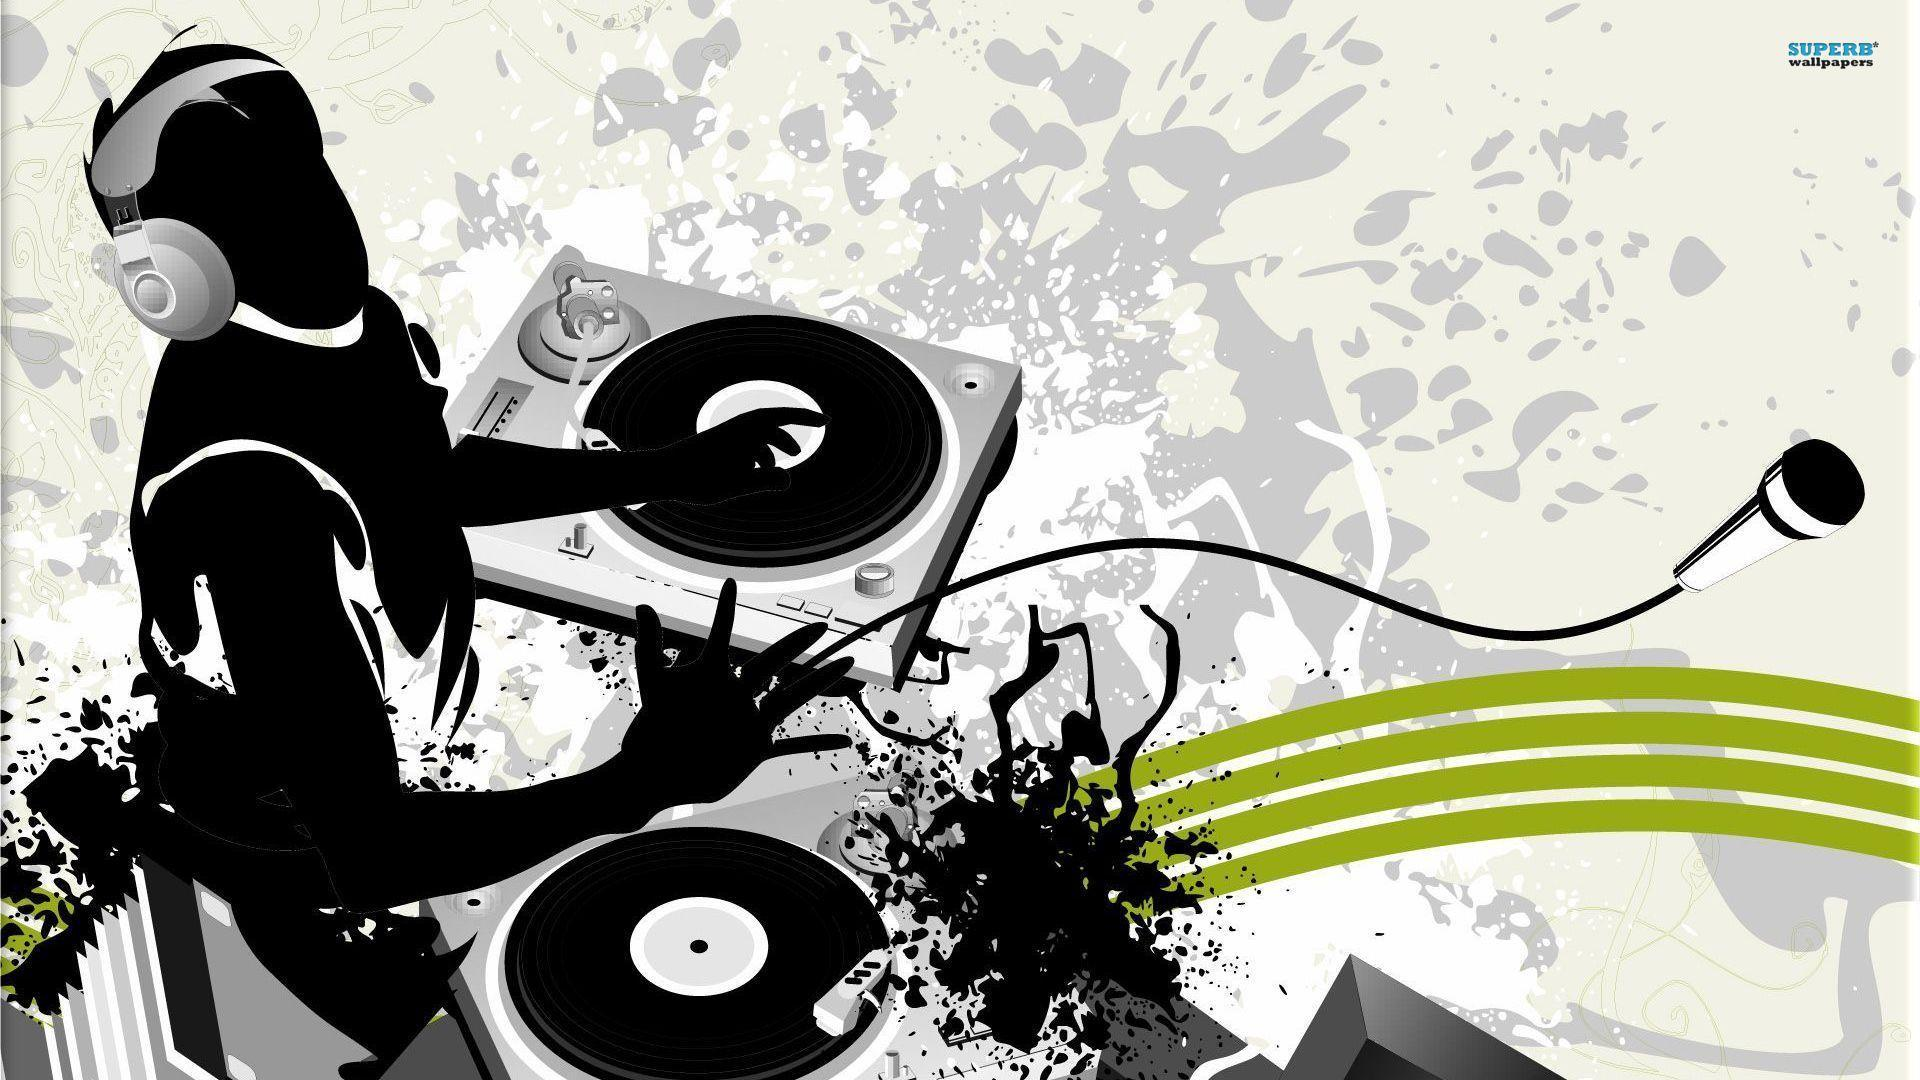 Wallpapers For > Cool Dj Hd Wallpapers For Desktop